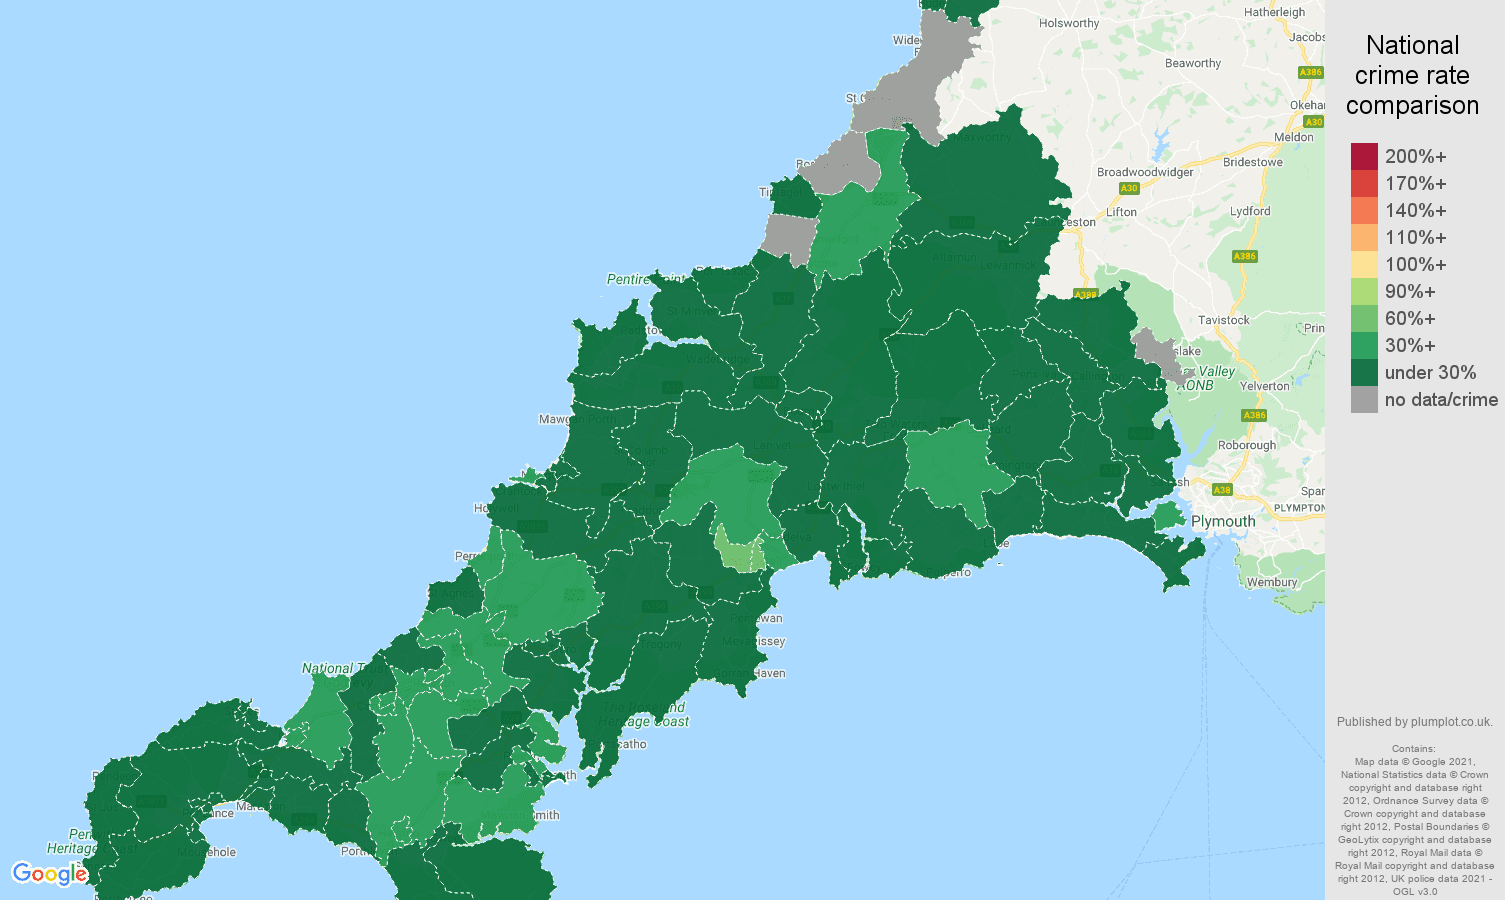 Cornwall vehicle crime rate comparison map